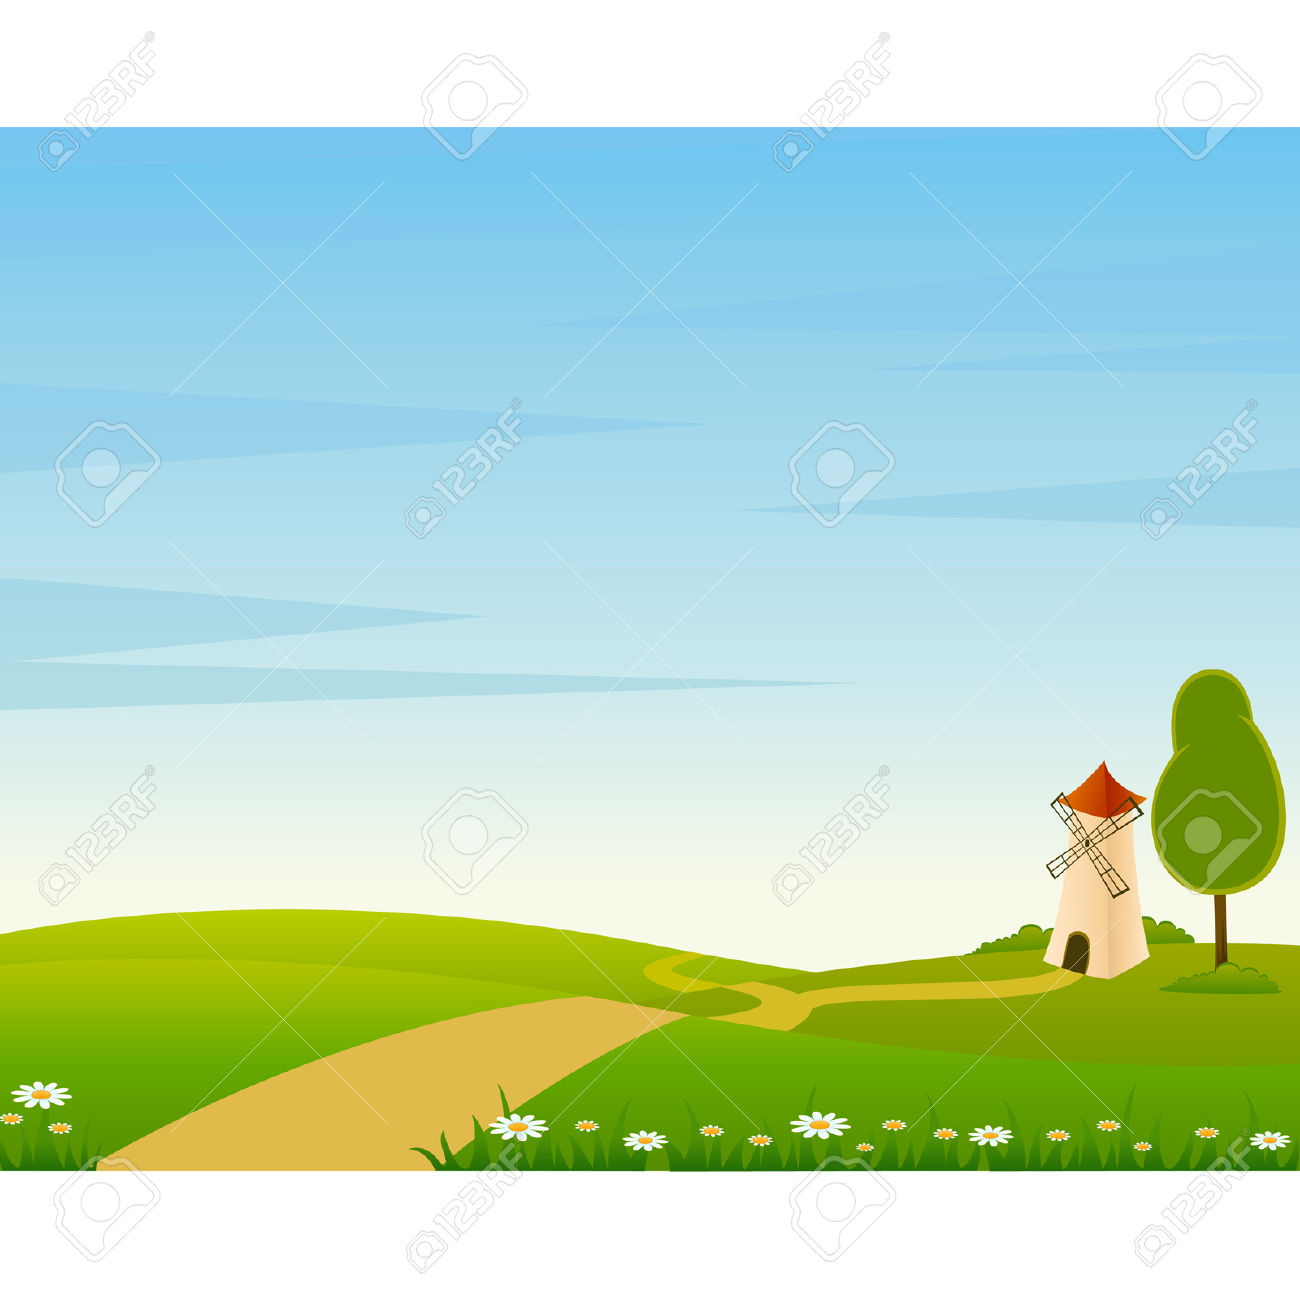 Community clipart country landscape Cartoon Landscape Road Farm cliparts